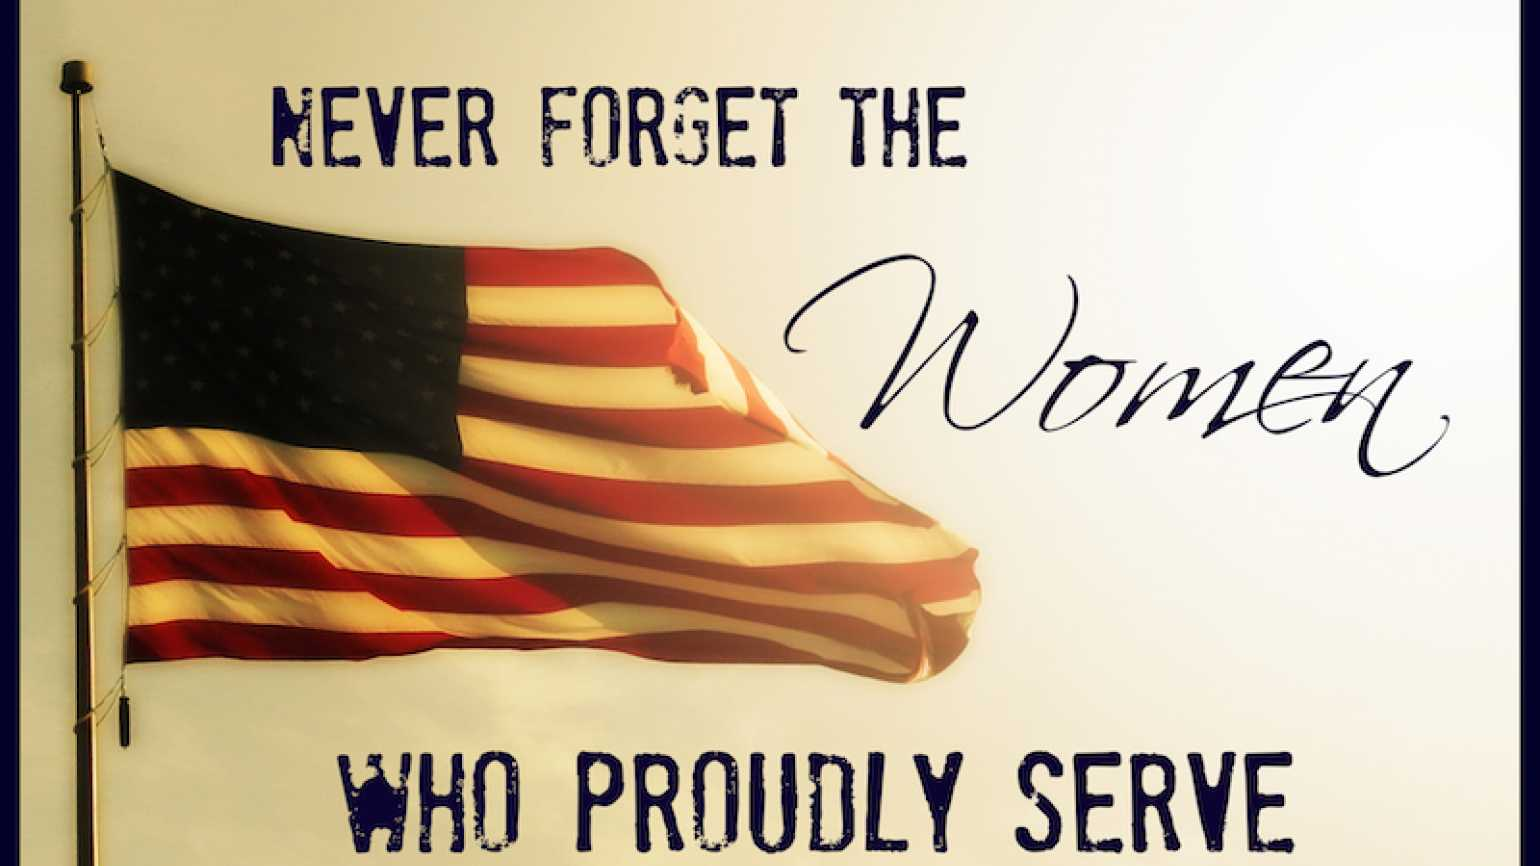 Women who serve. Image courtesy Edie Melson.